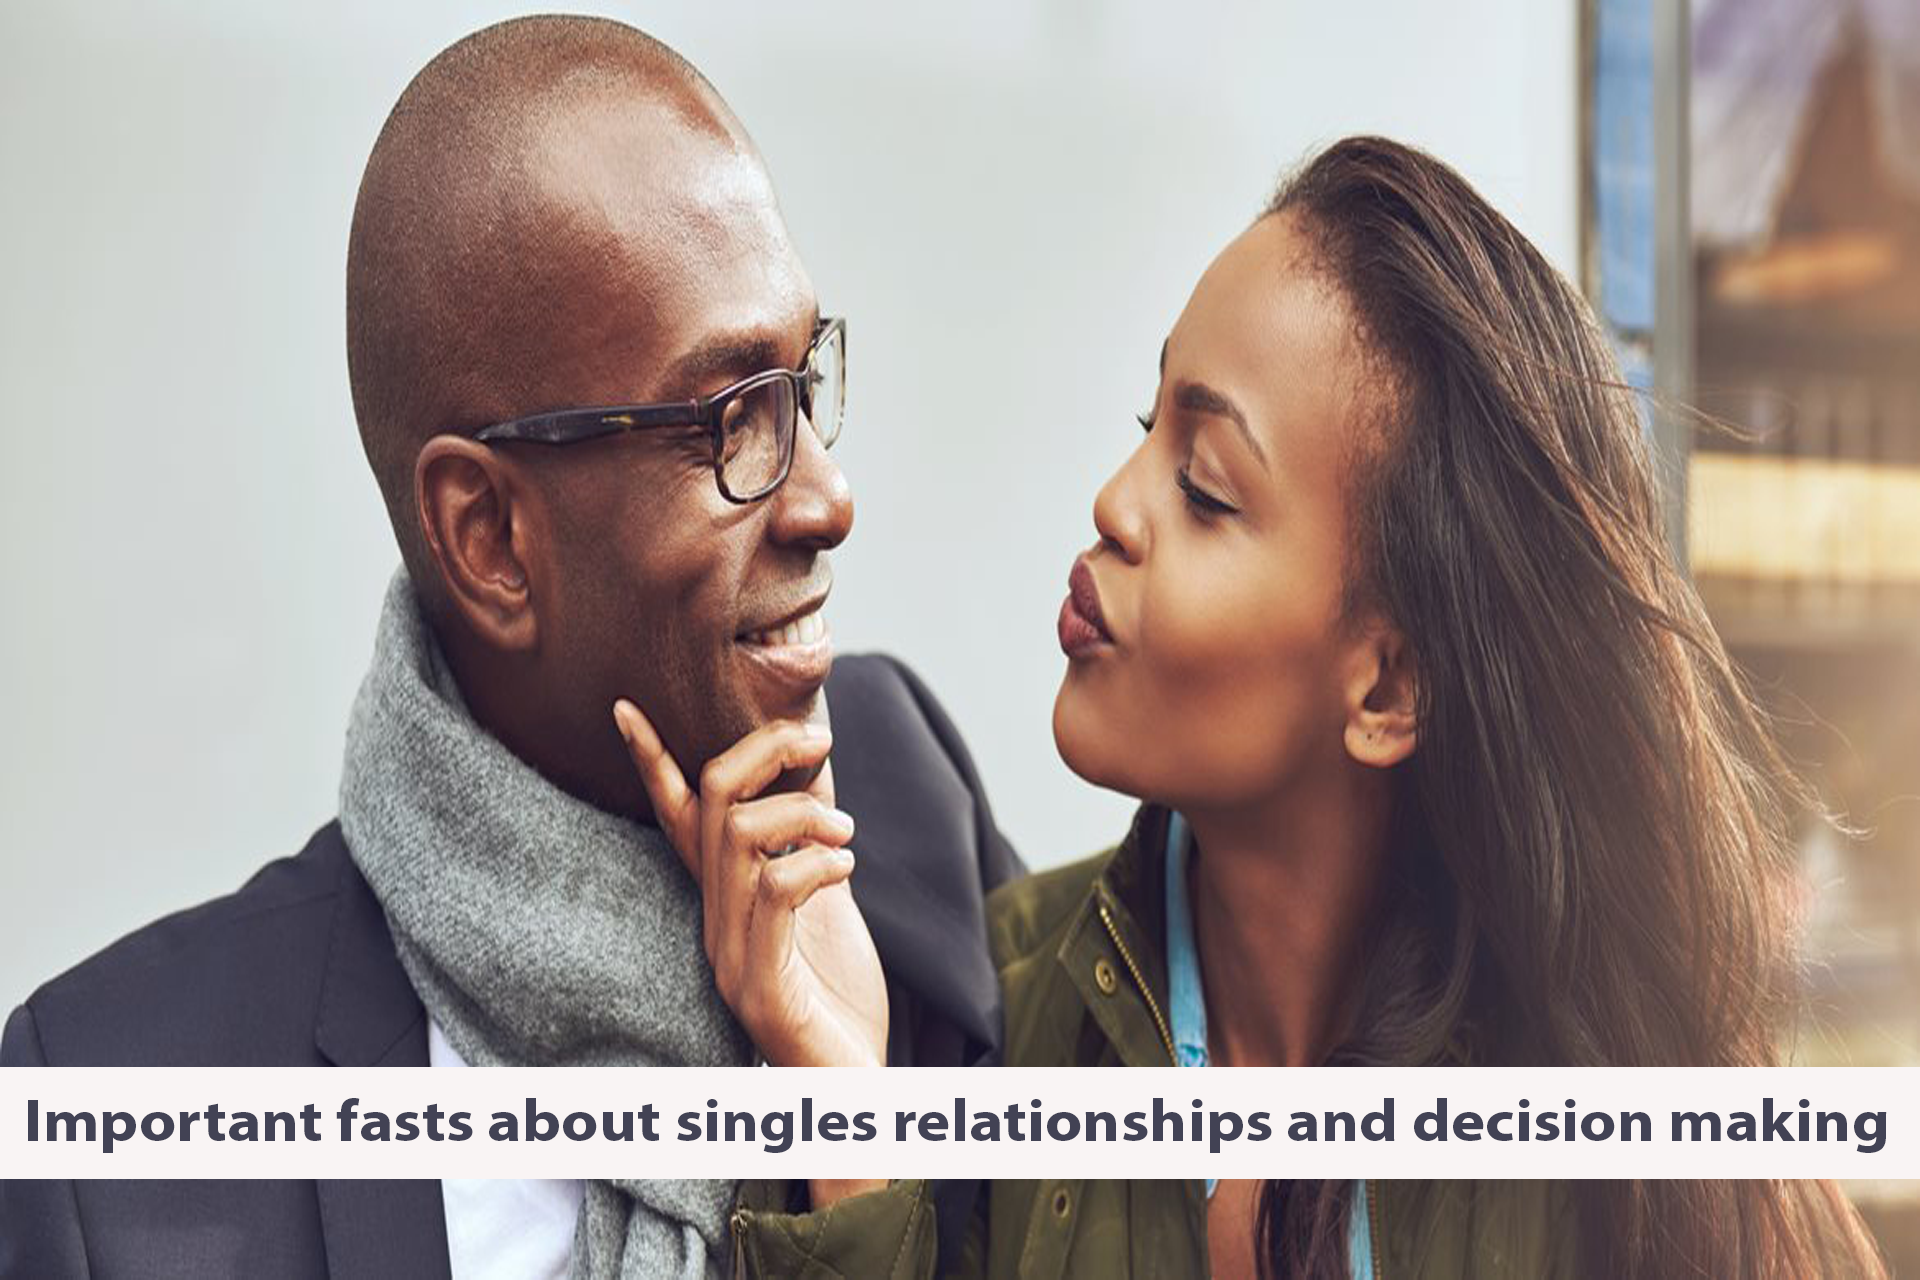 Important fasts about singles relationships and decision making